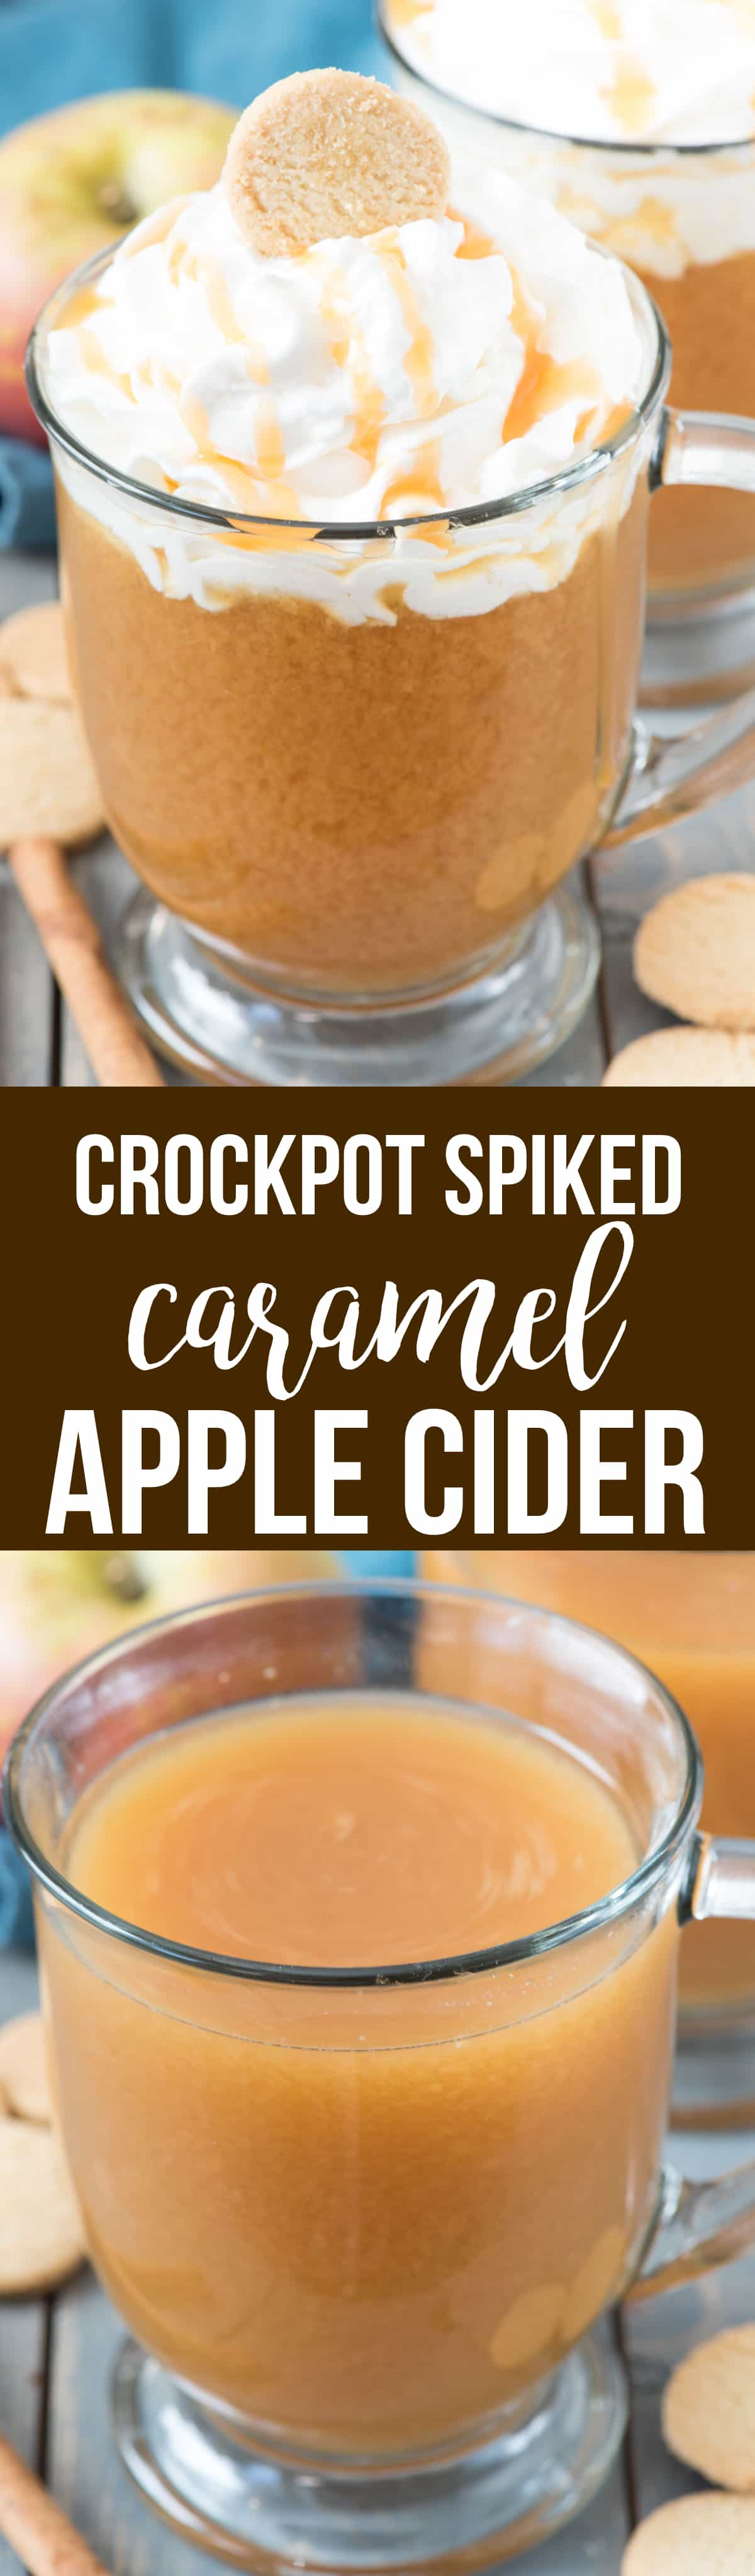 Spiked Crockpot Caramel Apple Cider - Make caramel apple cider in the slow cooker for a warm drink that is perfect for a crowd. Then spike it with vanilla vodka for the adults! This is everyone's favorite fall cocktail recipe.